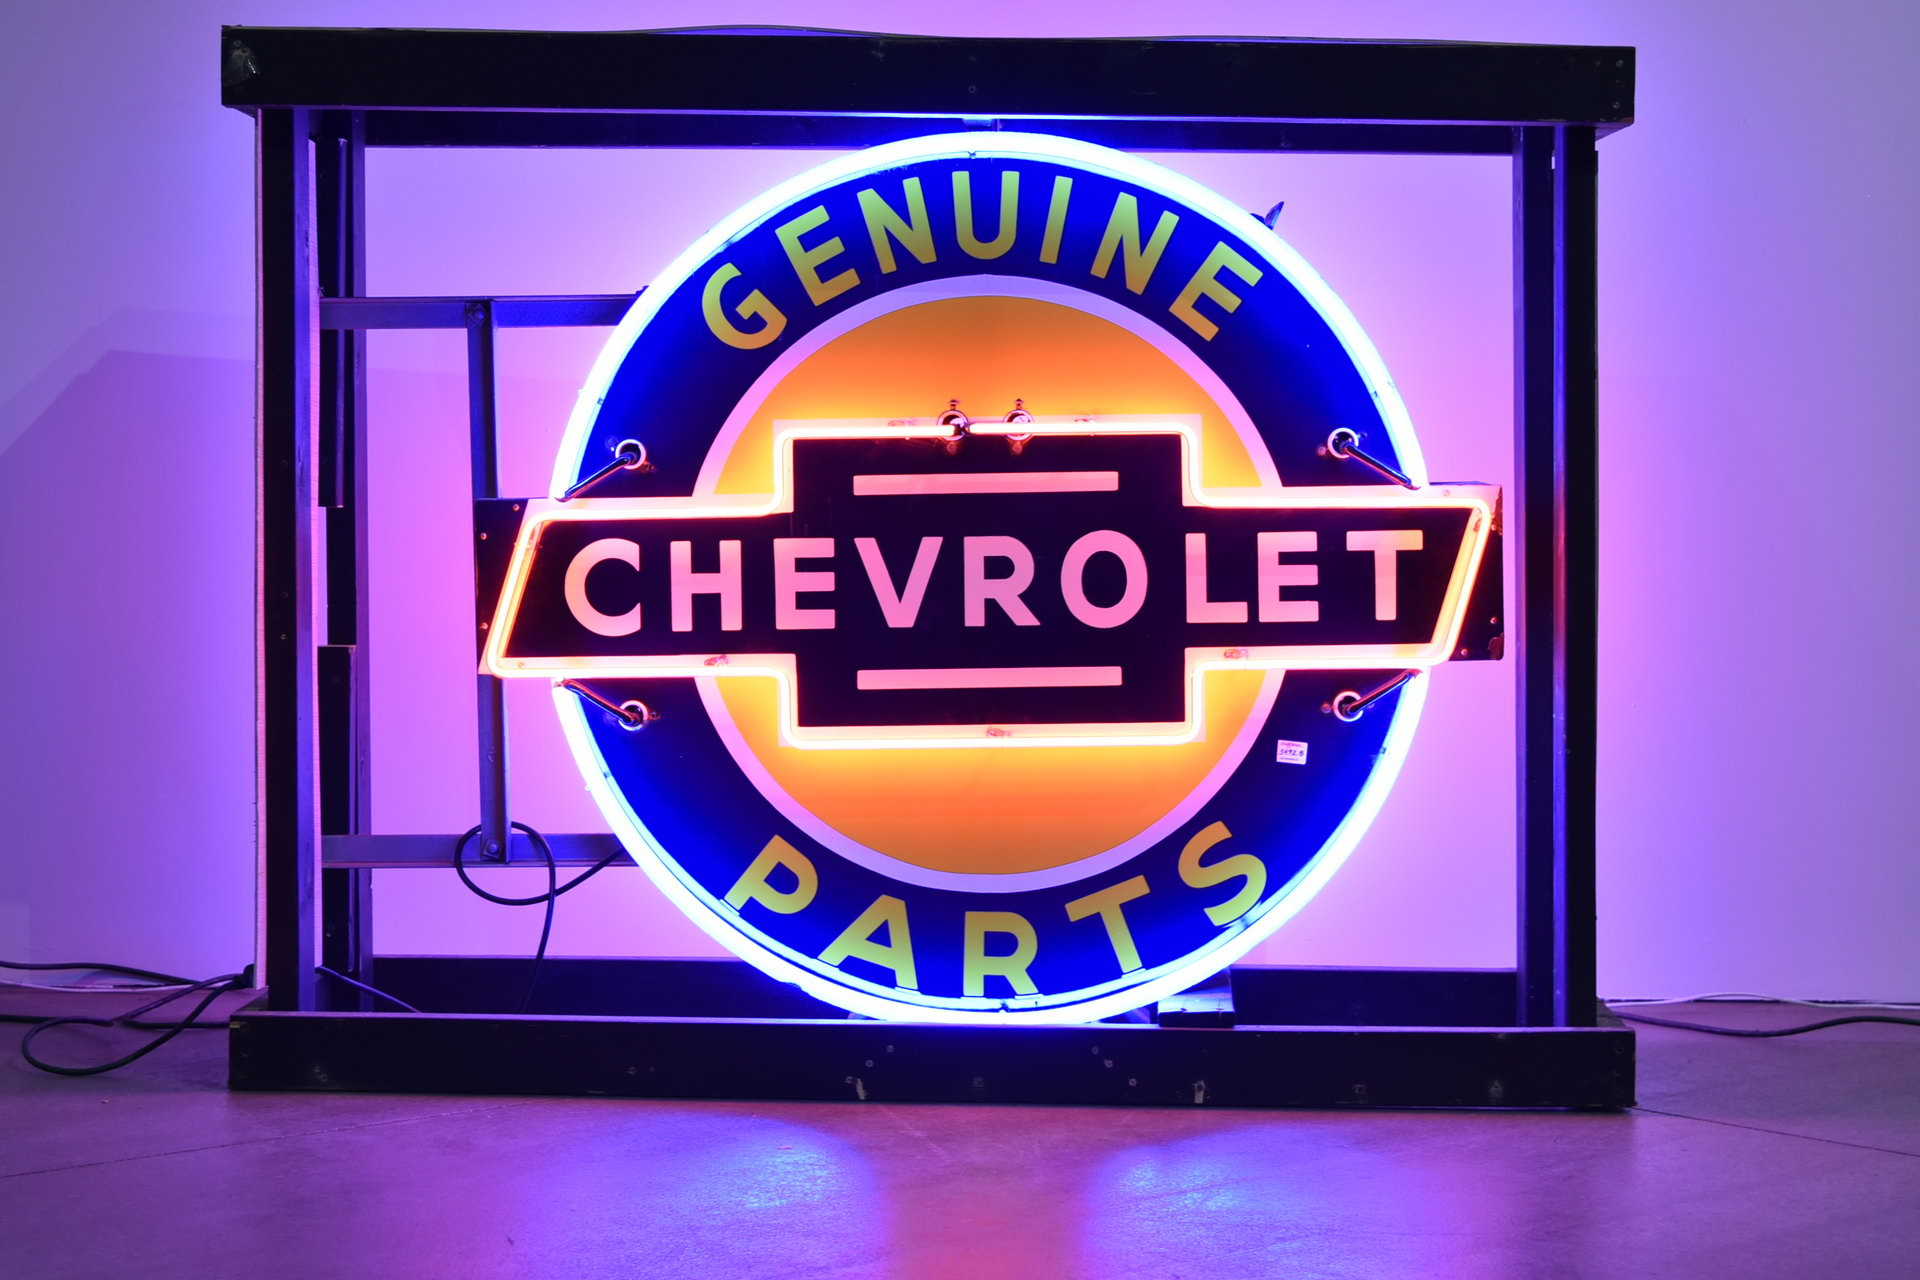 Incredible! Chevrolet Genuine Parts DSP Porcelain Neon Can Sign - Age Unknown